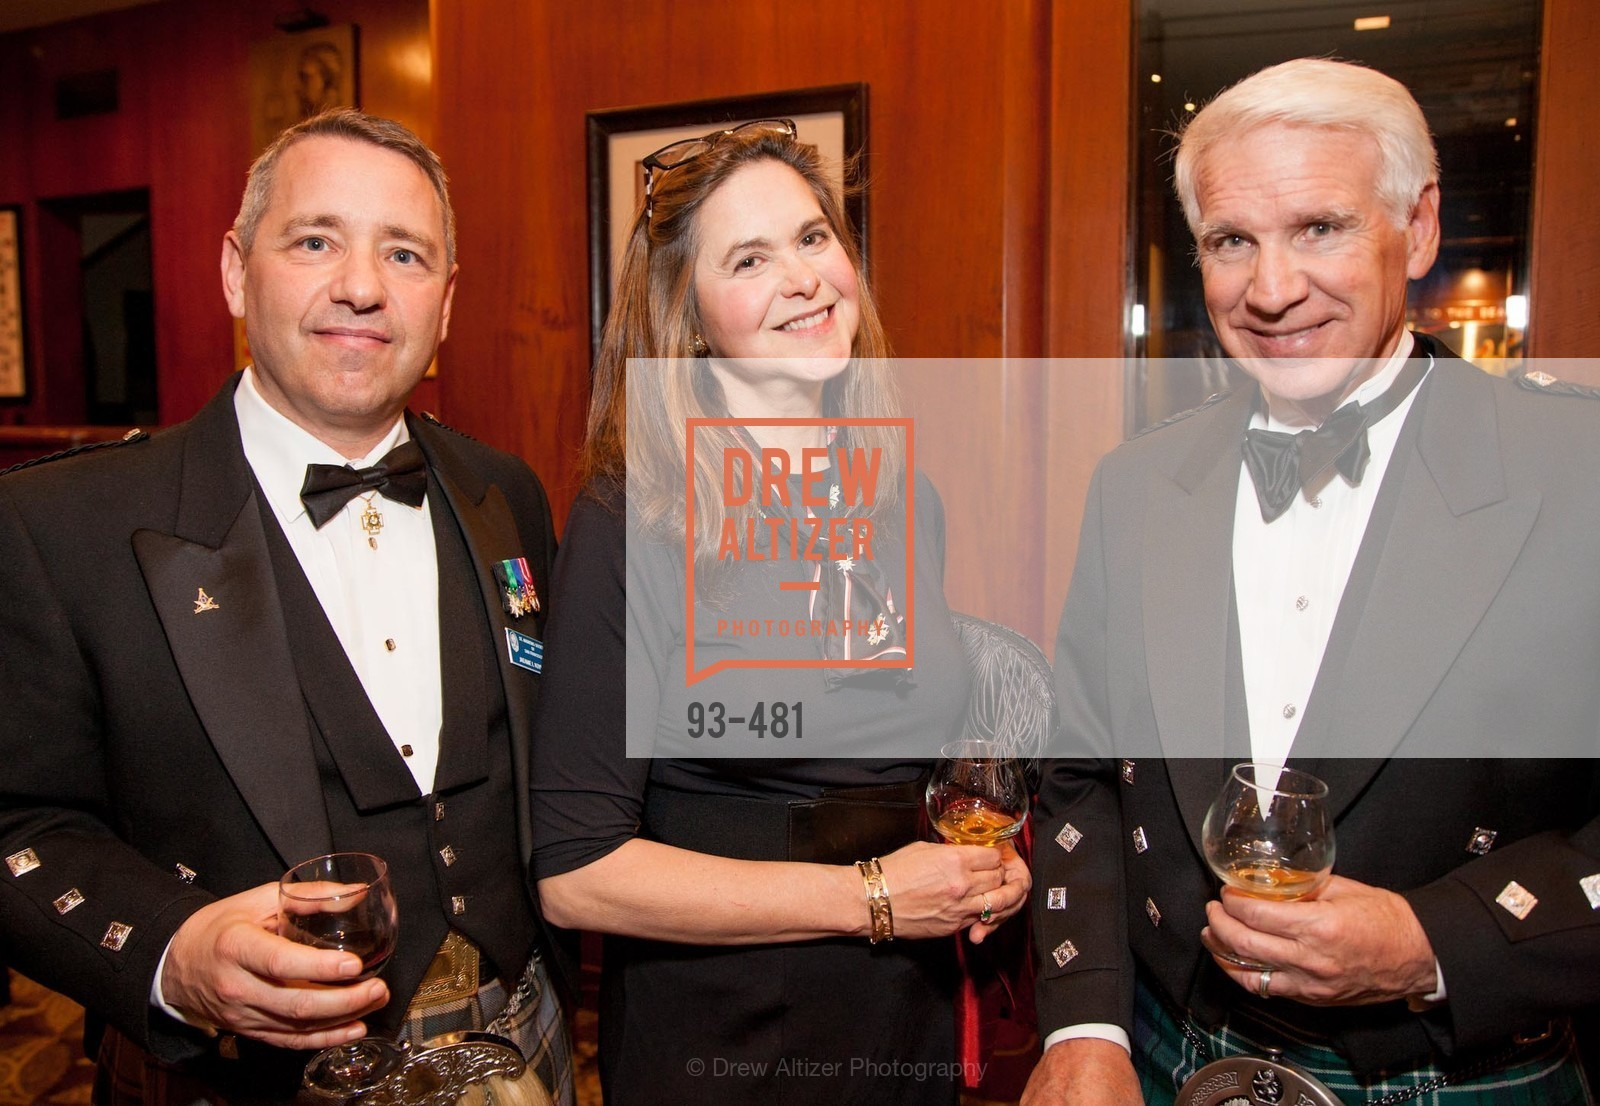 Jaeame Koyil, Timothy Blackburn, ST. ANDREW'S SOCIETY OF SAN FRANCISCO'S Traditional Burns Night Supper 2014, US. US, January 25th, 2014,Drew Altizer, Drew Altizer Photography, full-service agency, private events, San Francisco photographer, photographer california